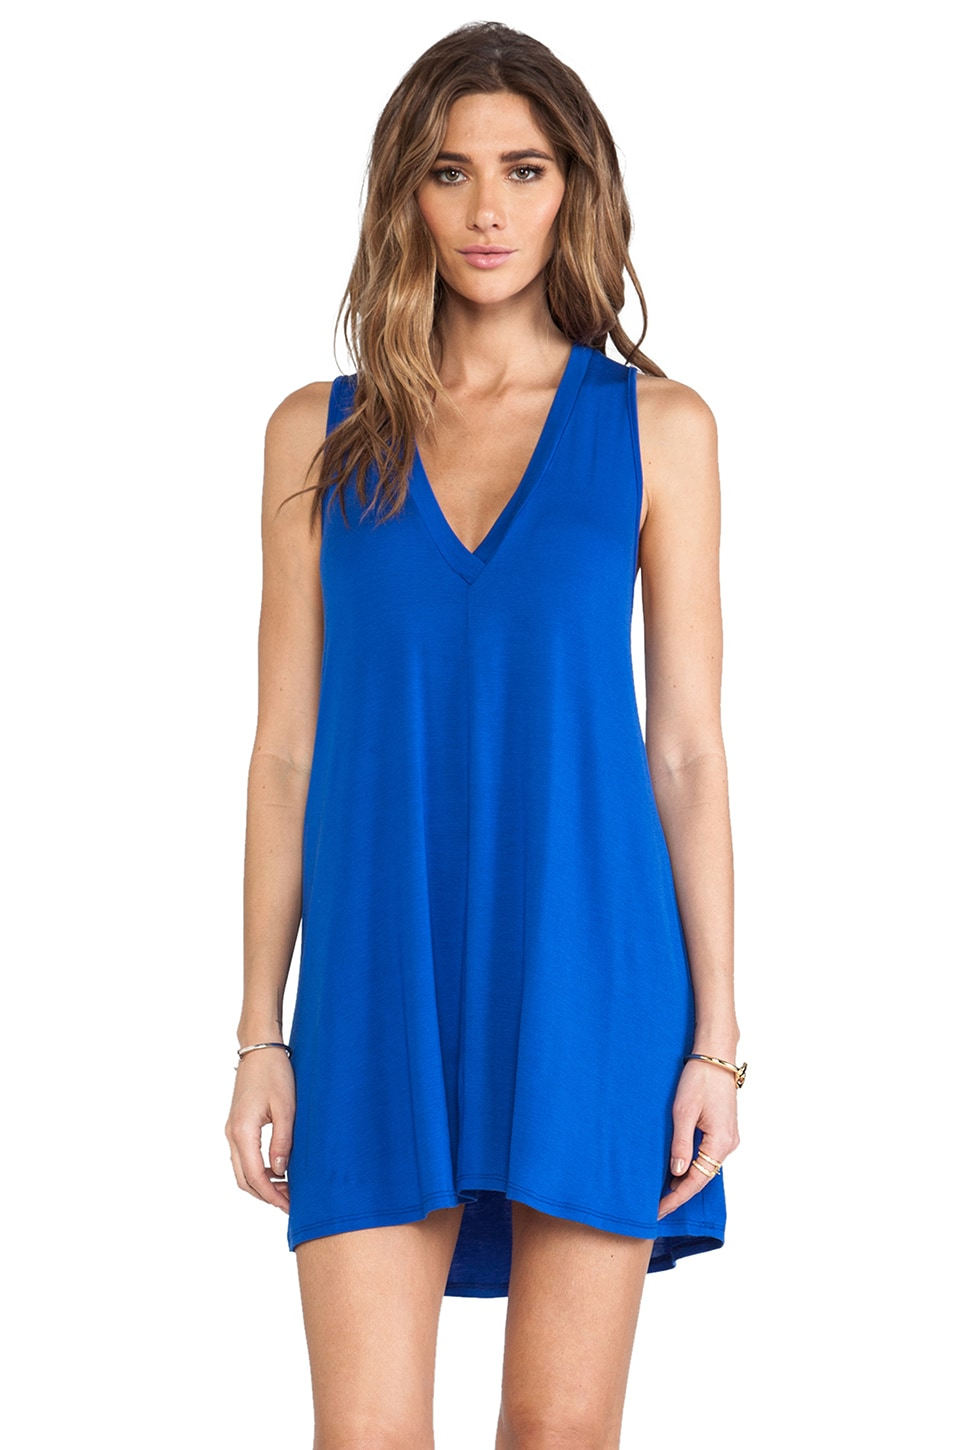 Riller & Fount Guy Dress in Techno Blue